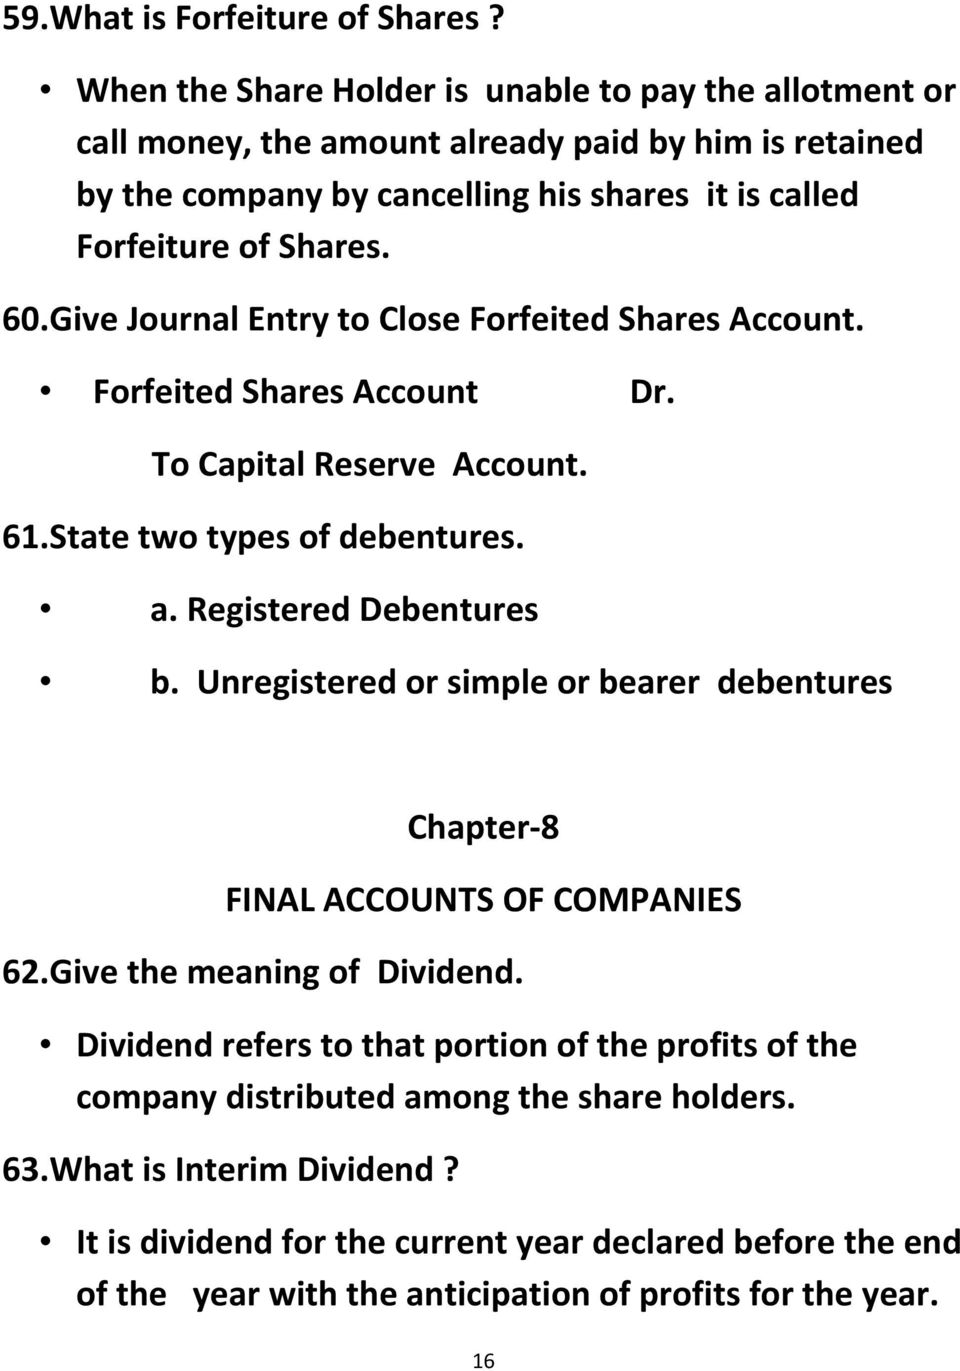 what is meant by forfeiture of shares